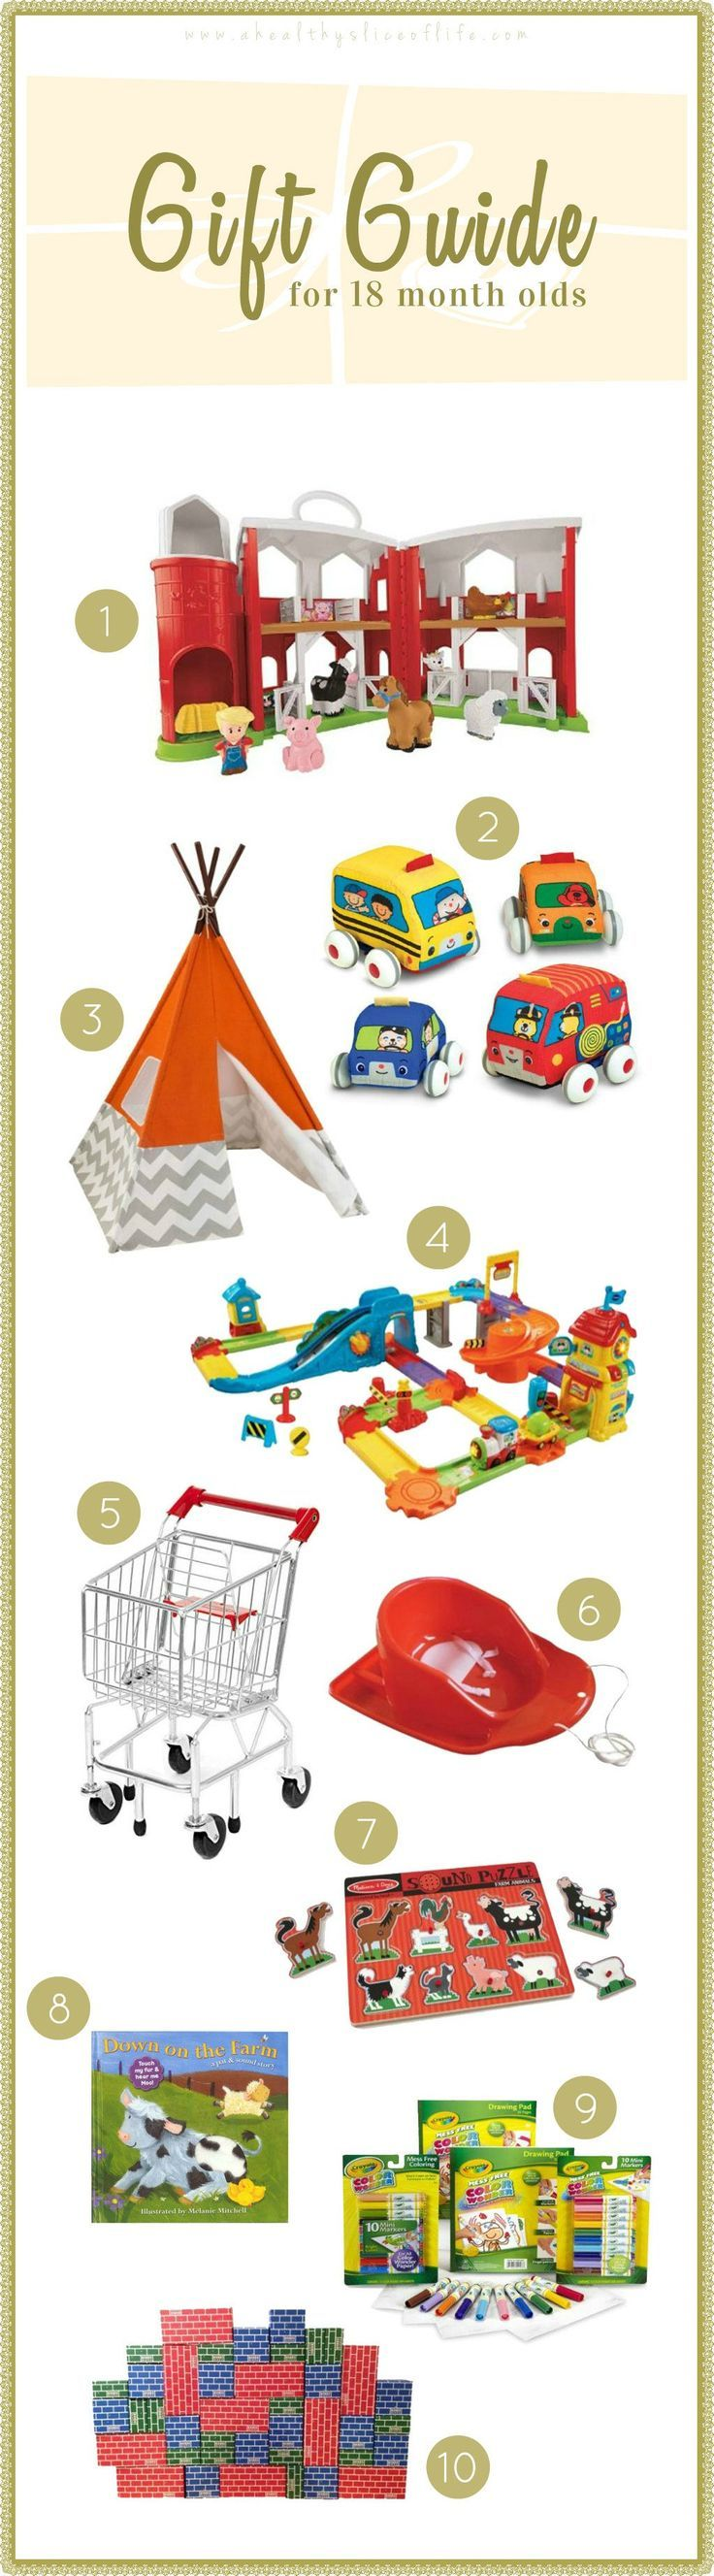 Gift Guide and ideas for 18 months old.  Perfect gift ideas for Christmas!